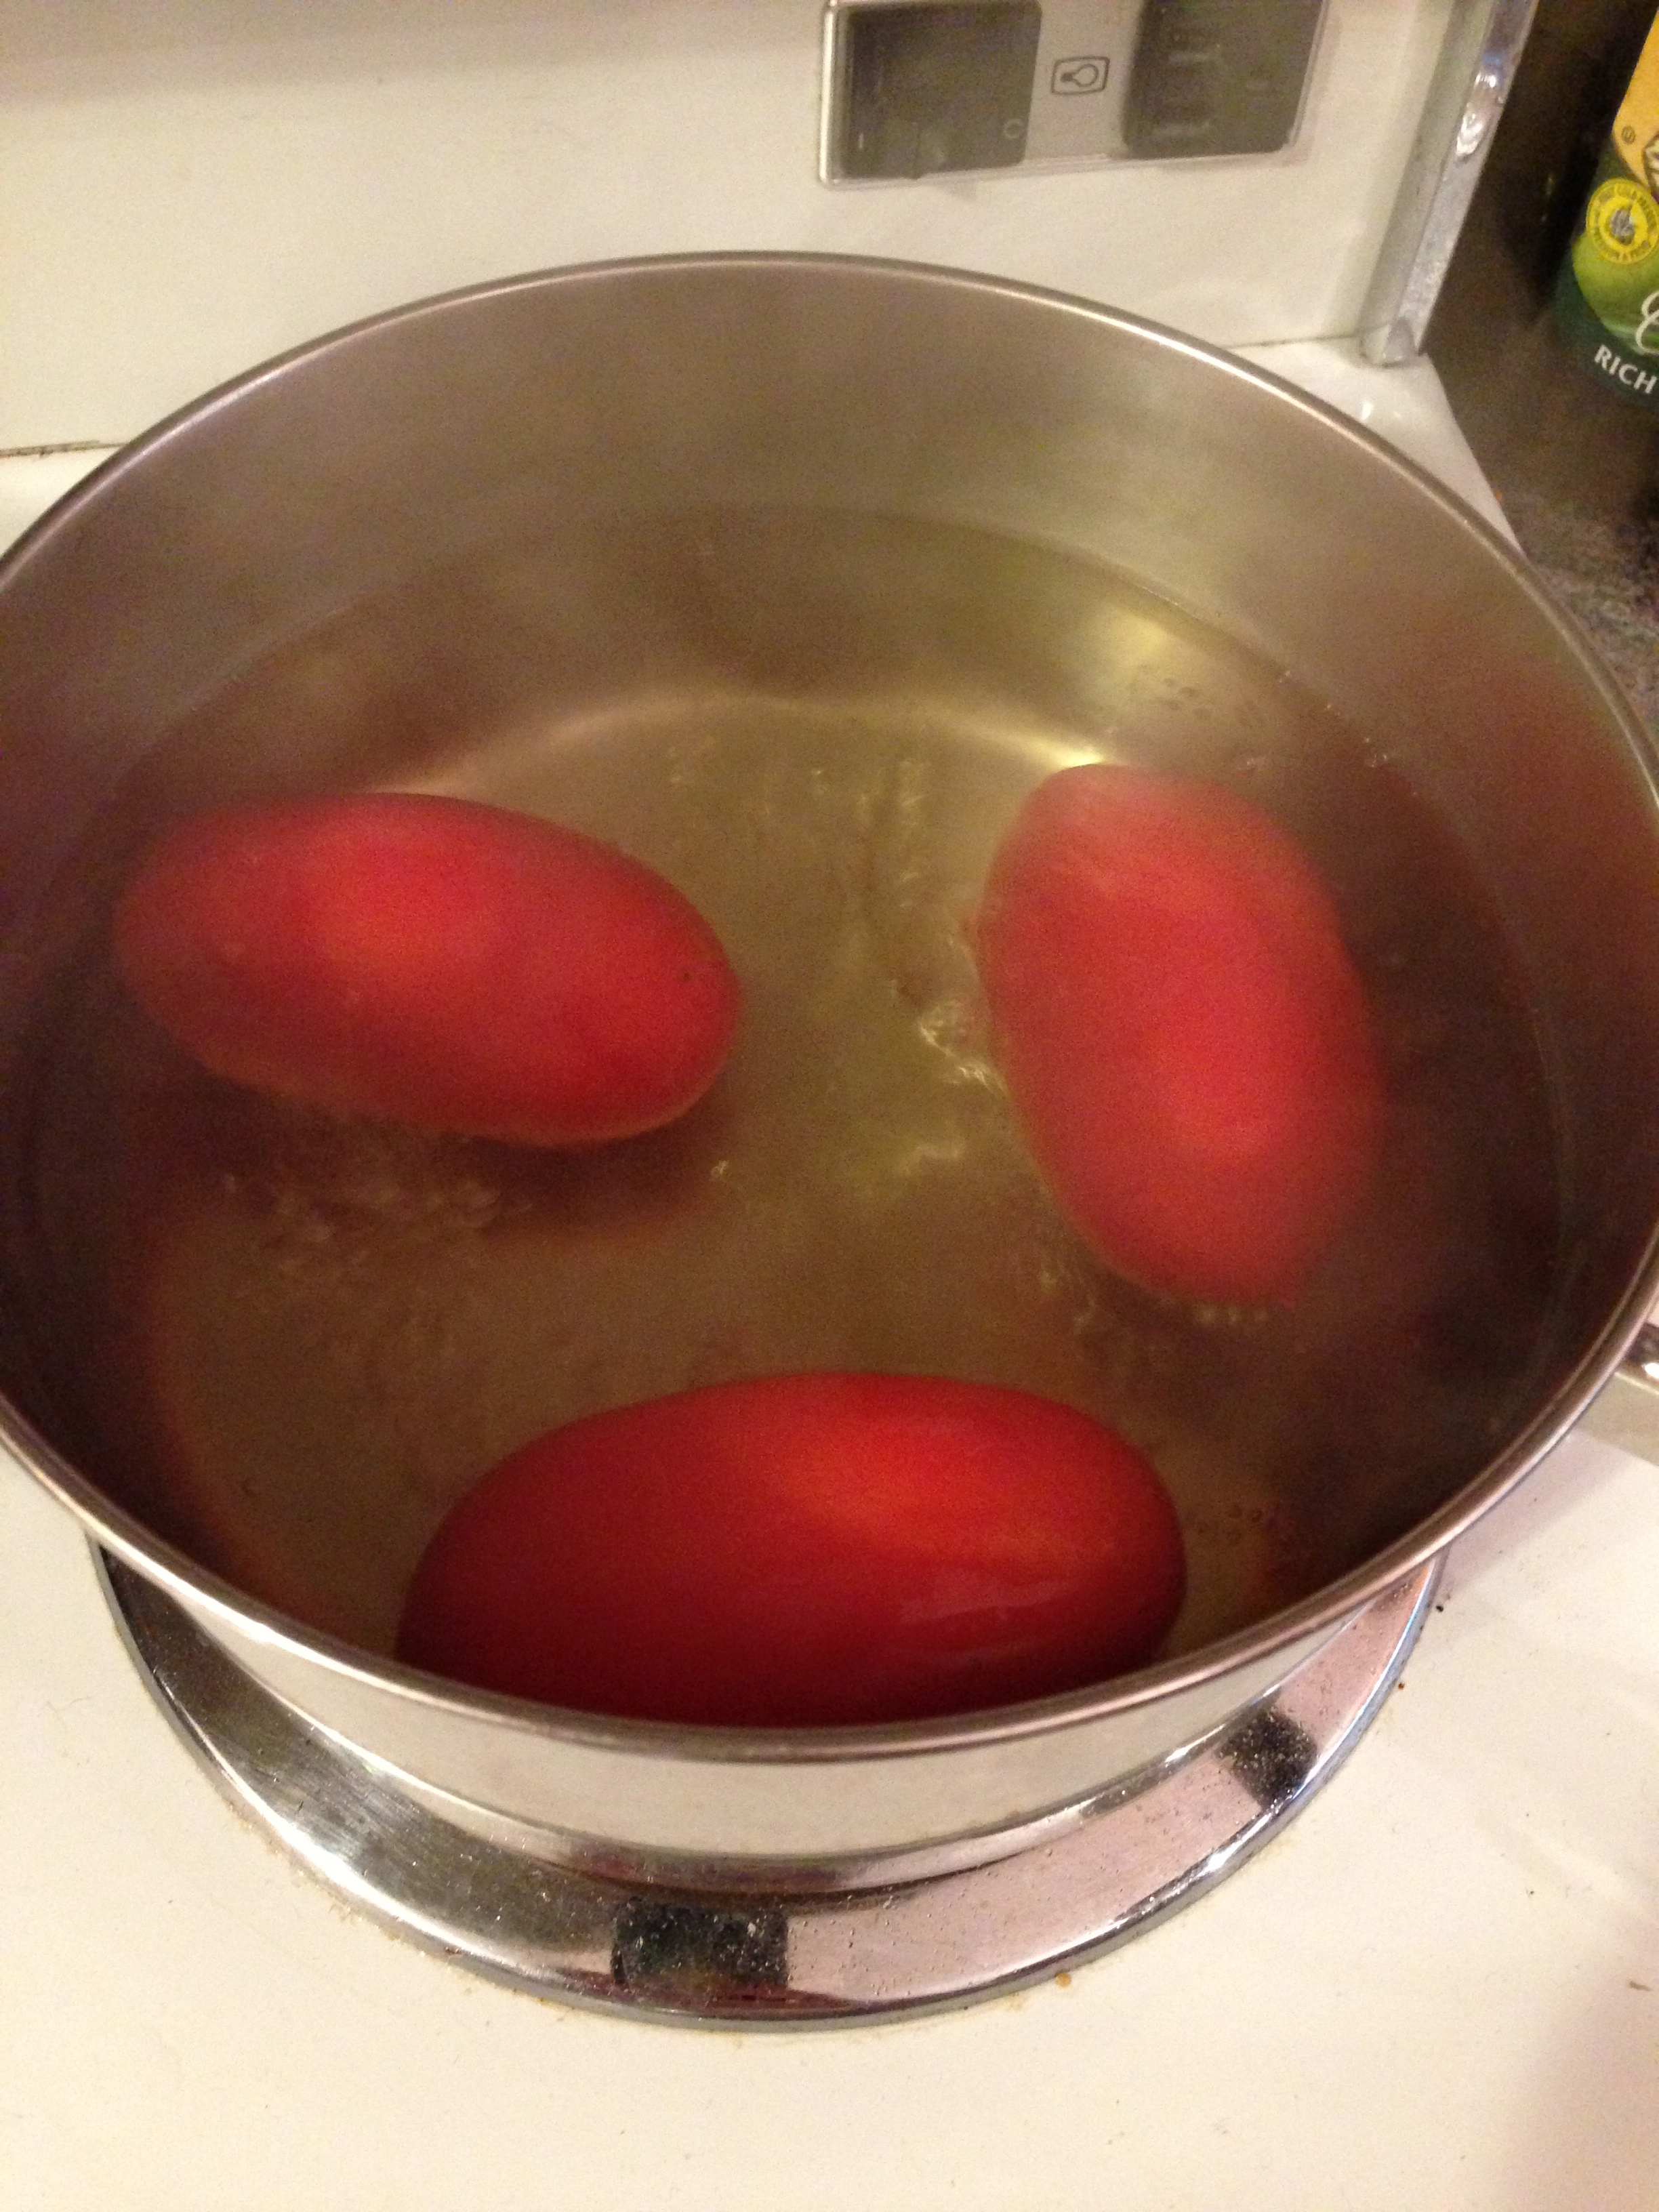 Blanching the tomatoes